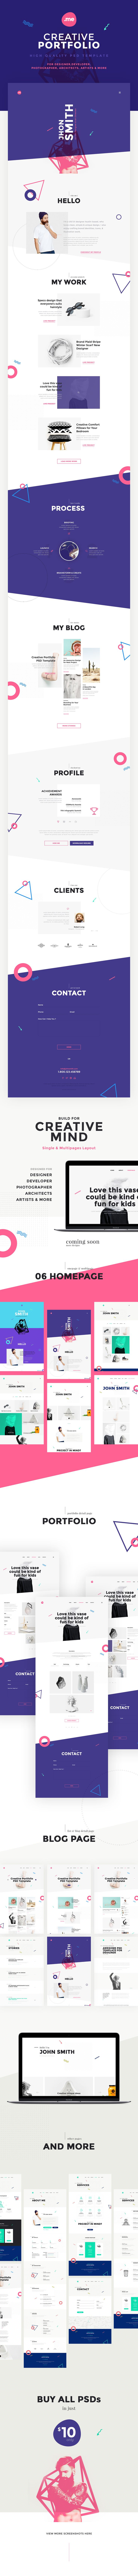 Me is a one page & Multi Pages psd portfolio & CV / Resume templates for Designer, Developer, Freelancer Artist, Photographer & Can be use for Personal Pages. Layers are well organized with proper naming conventions so you can easily access and change thi… More